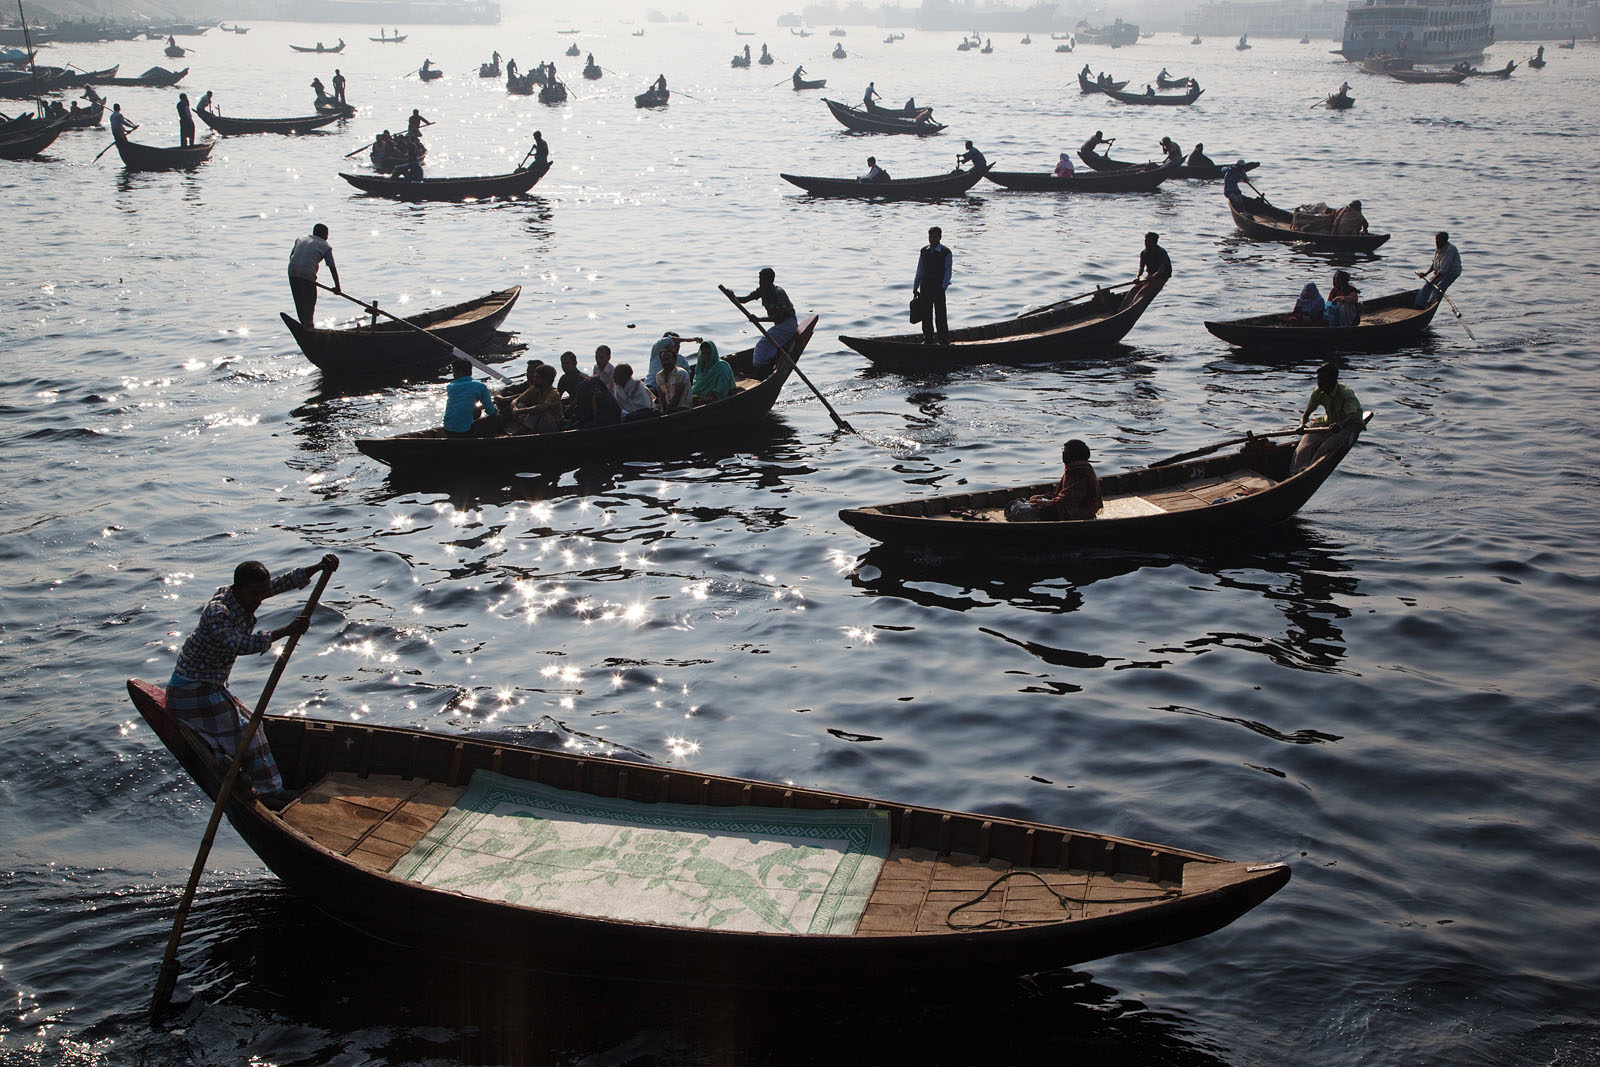 bangladesh_dhaka_buriganga_river_boats_transport_view-1600x1067.jpg